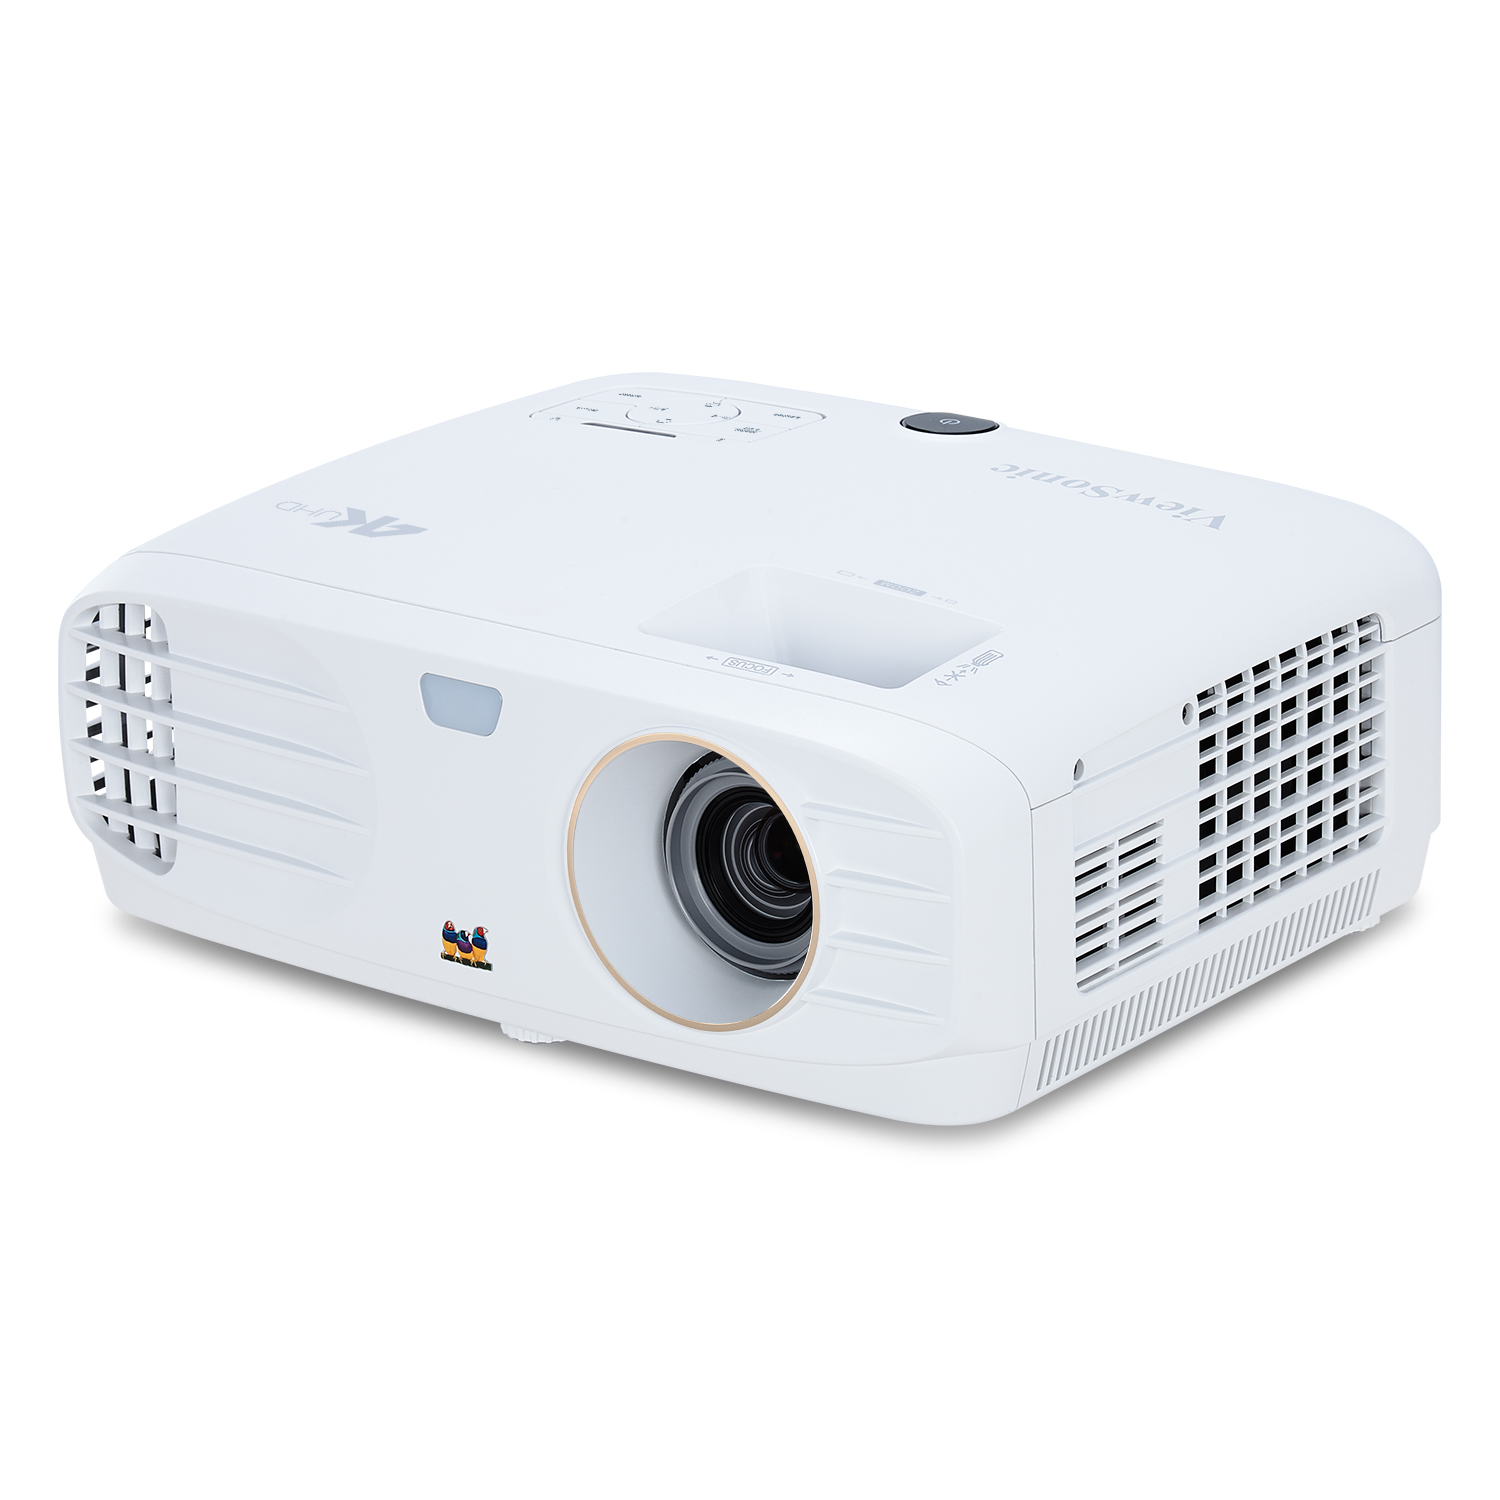 The $1500 4K DLP projectors are out at CES Viewsonic PX727-4K using 0.47 XPR DLP